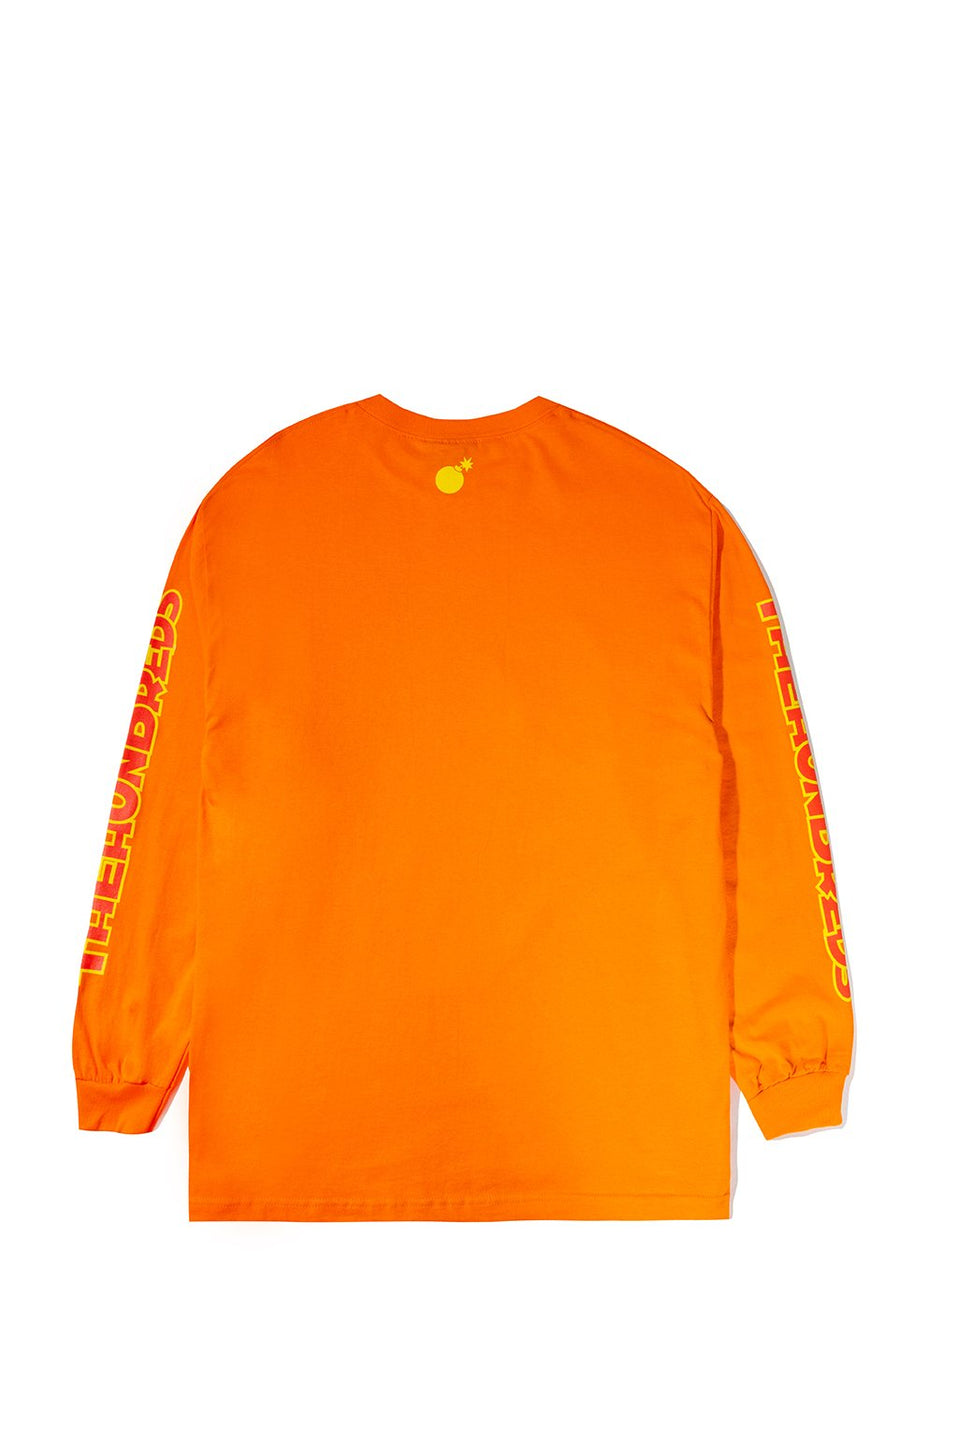 Hidden Adam L/S Shirt